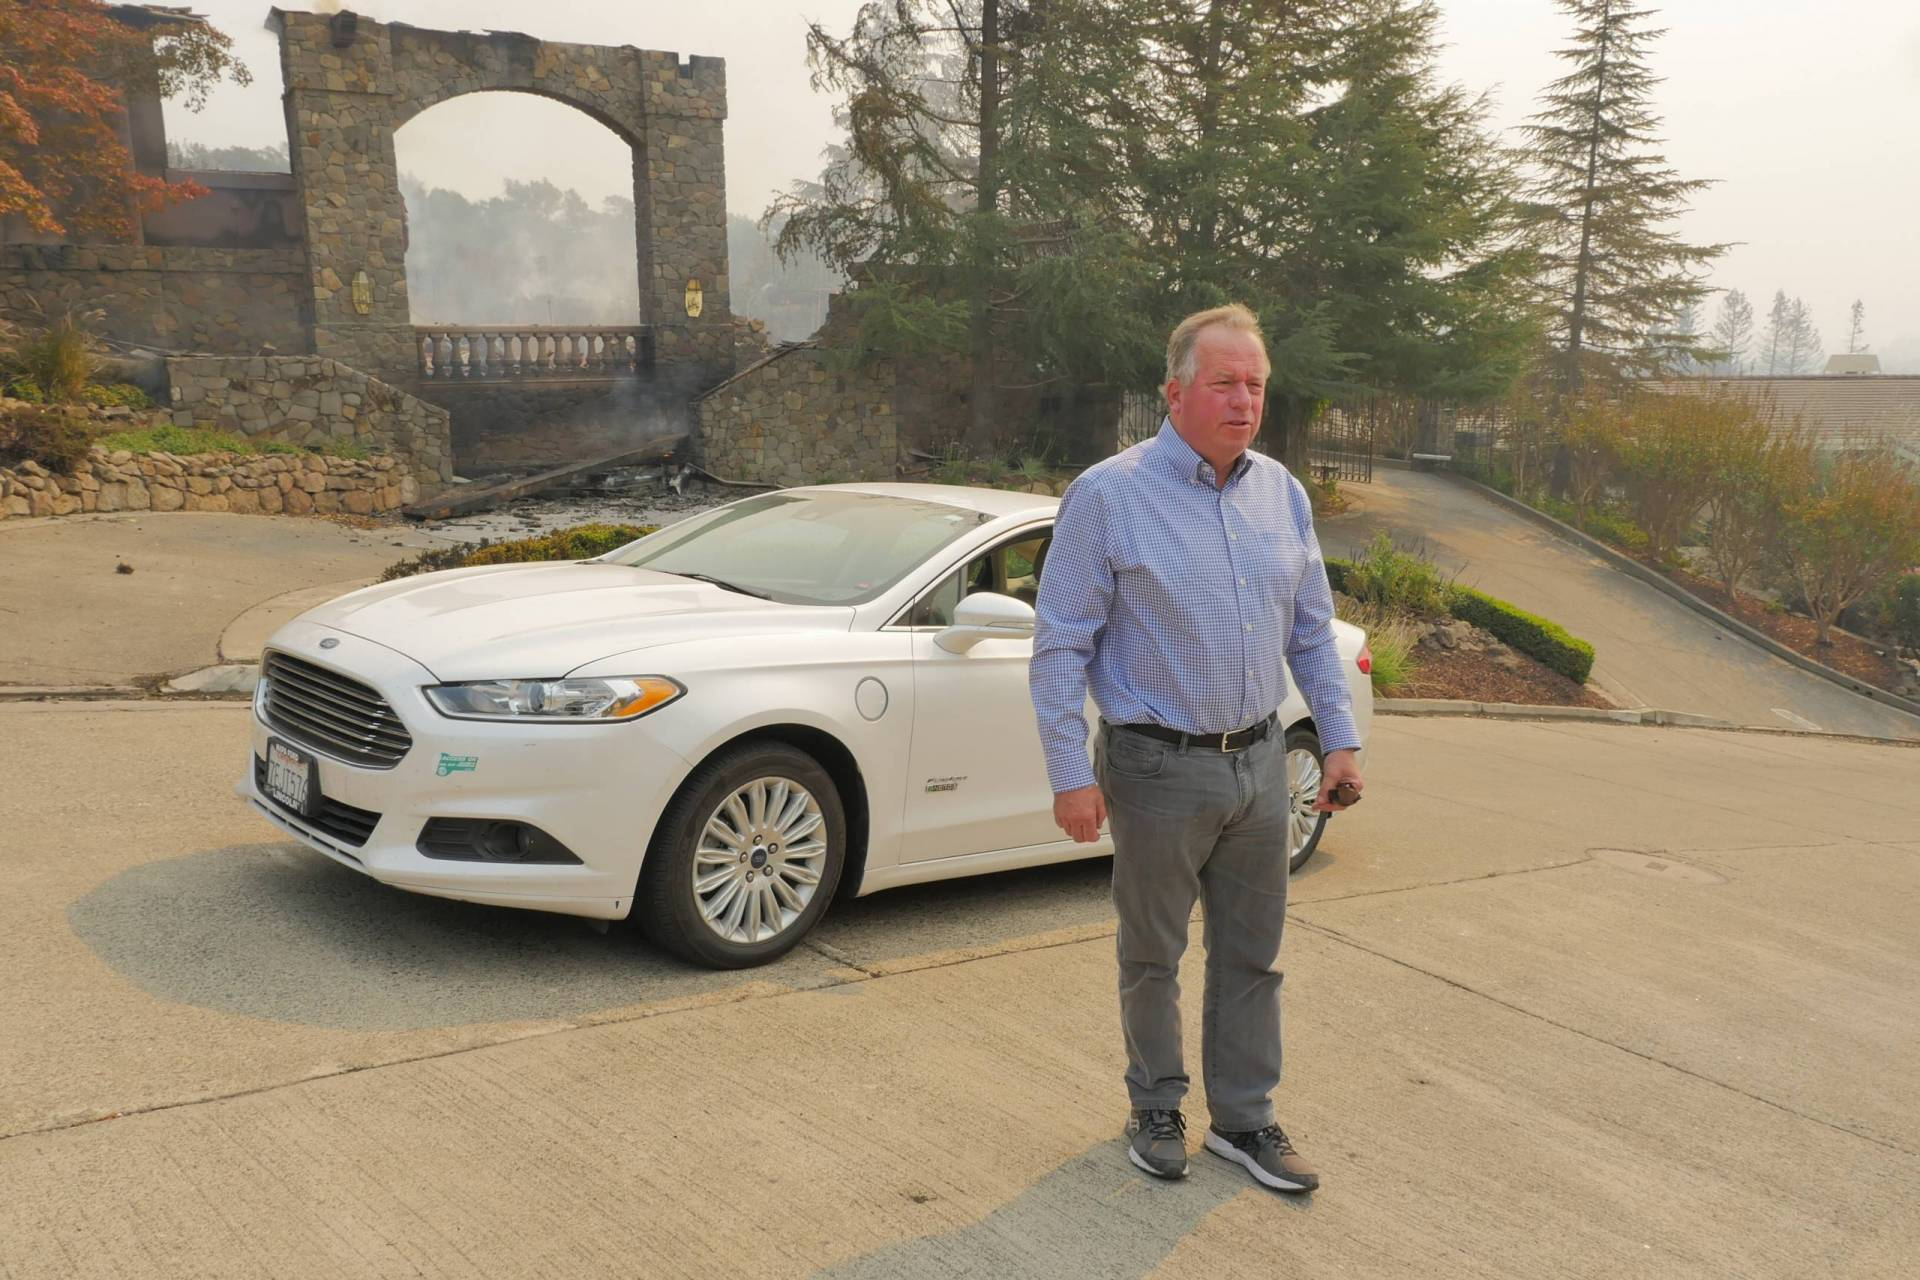 California State Sen. Bill Dodd stands outside a home at the Silverado Crest residential complex in Napa County not long after it was destroyed by the wine country firestorm of Oct. 2017. Dodd lived nearby.